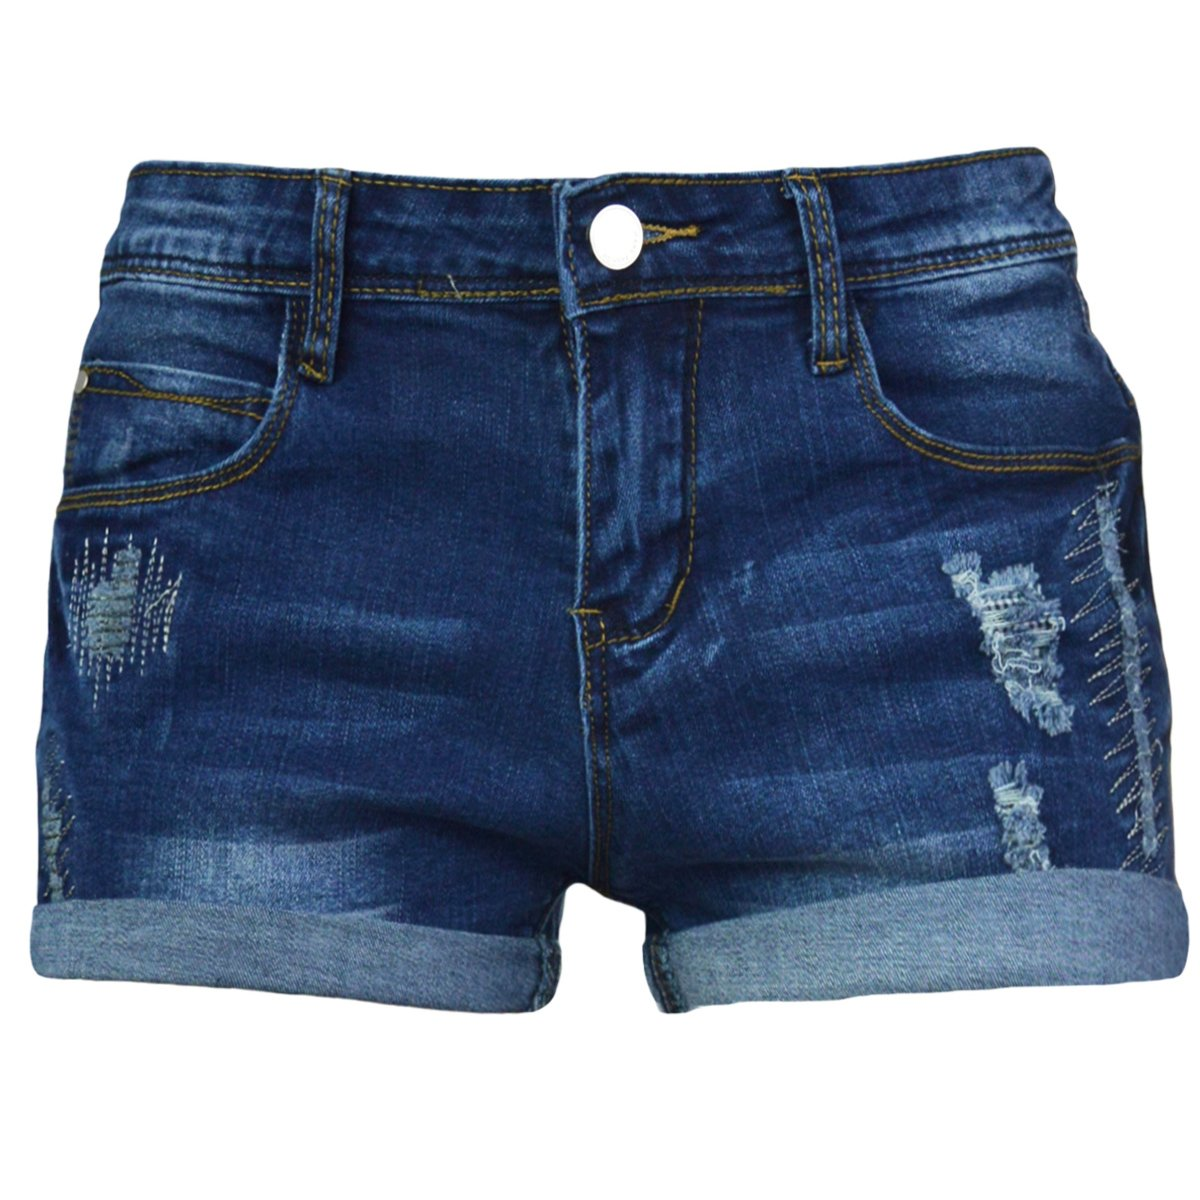 PHOENISING Women's Stylish Ripped Hole Short Shorts Stretchy Denim Fabric Hot Pants,Size 2-16